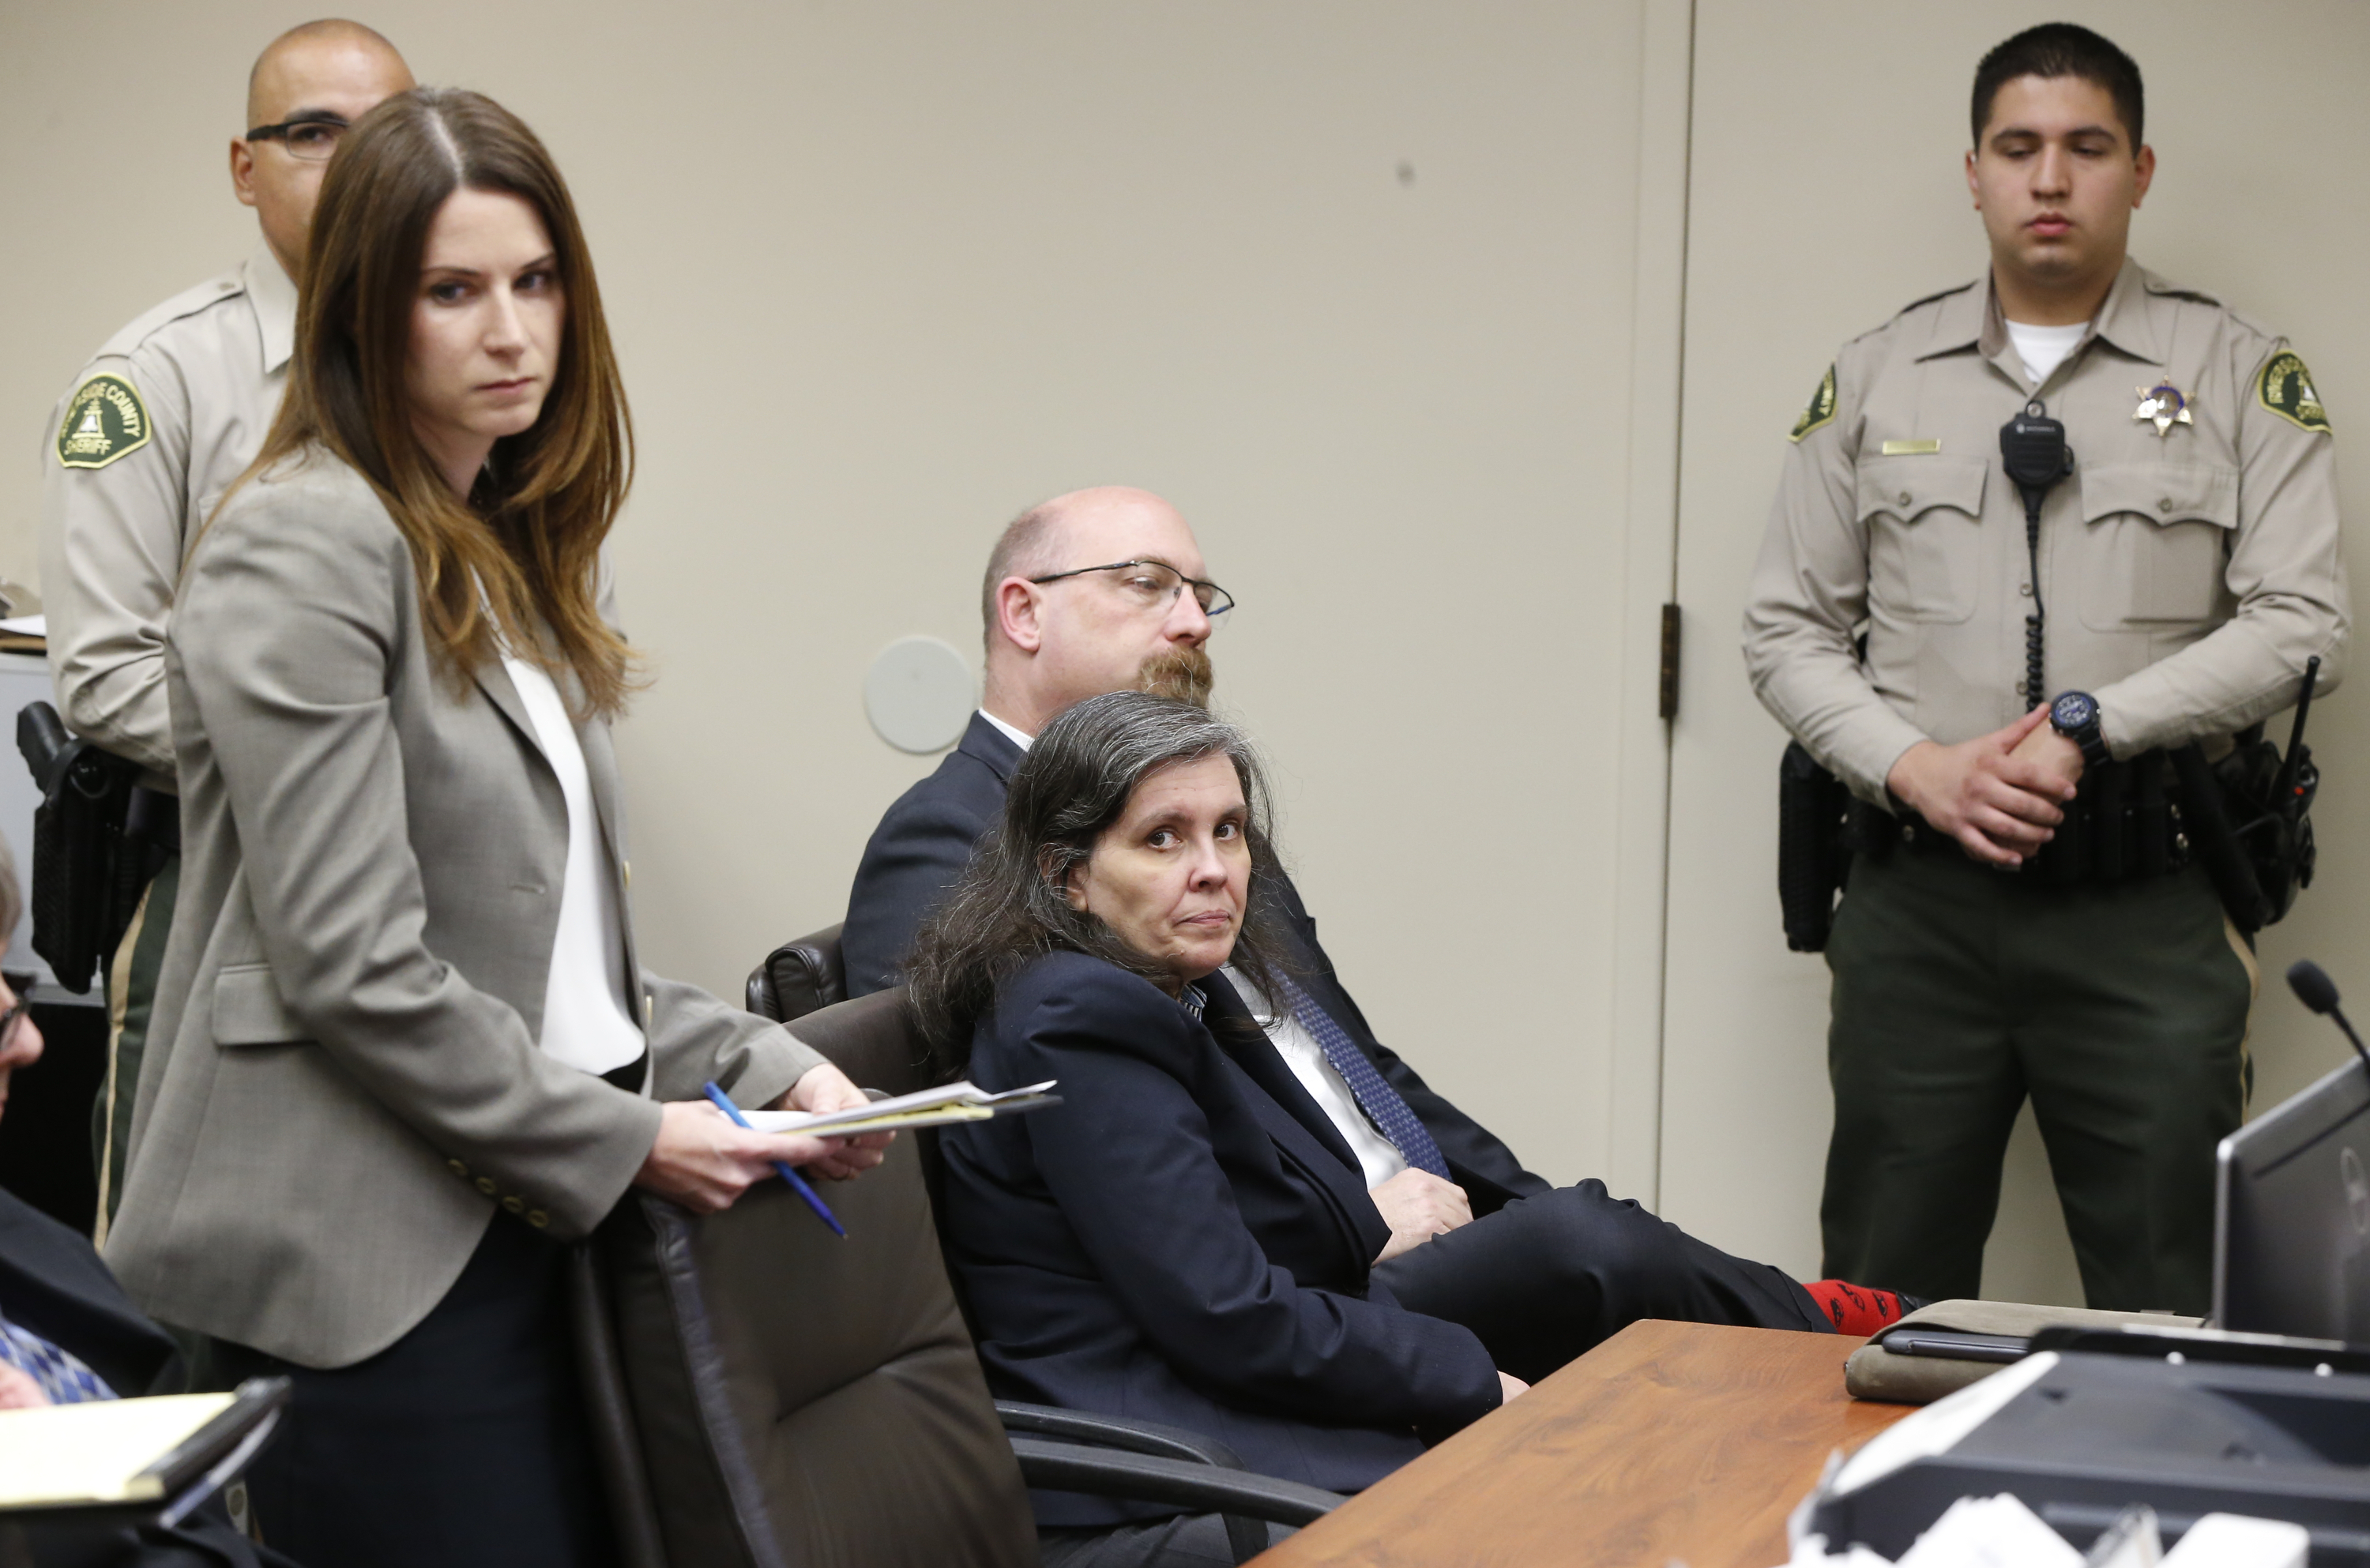 Louise Turpin, center, sits with her counsel, Jeff Moore, as she appears in court for a conference about she and her husband's case in Riverside, Calif., Friday, Feb. 23, 2018. David and Louse Turpin have pleaded not guilty to torture and other charges and each is held on $12 million bail. The couple was arrested last month after their 17-year-old daughter escaped from the family's home in Perris, Calif., and called 911. (AP Photo/Damian Dovarganes, Pool)